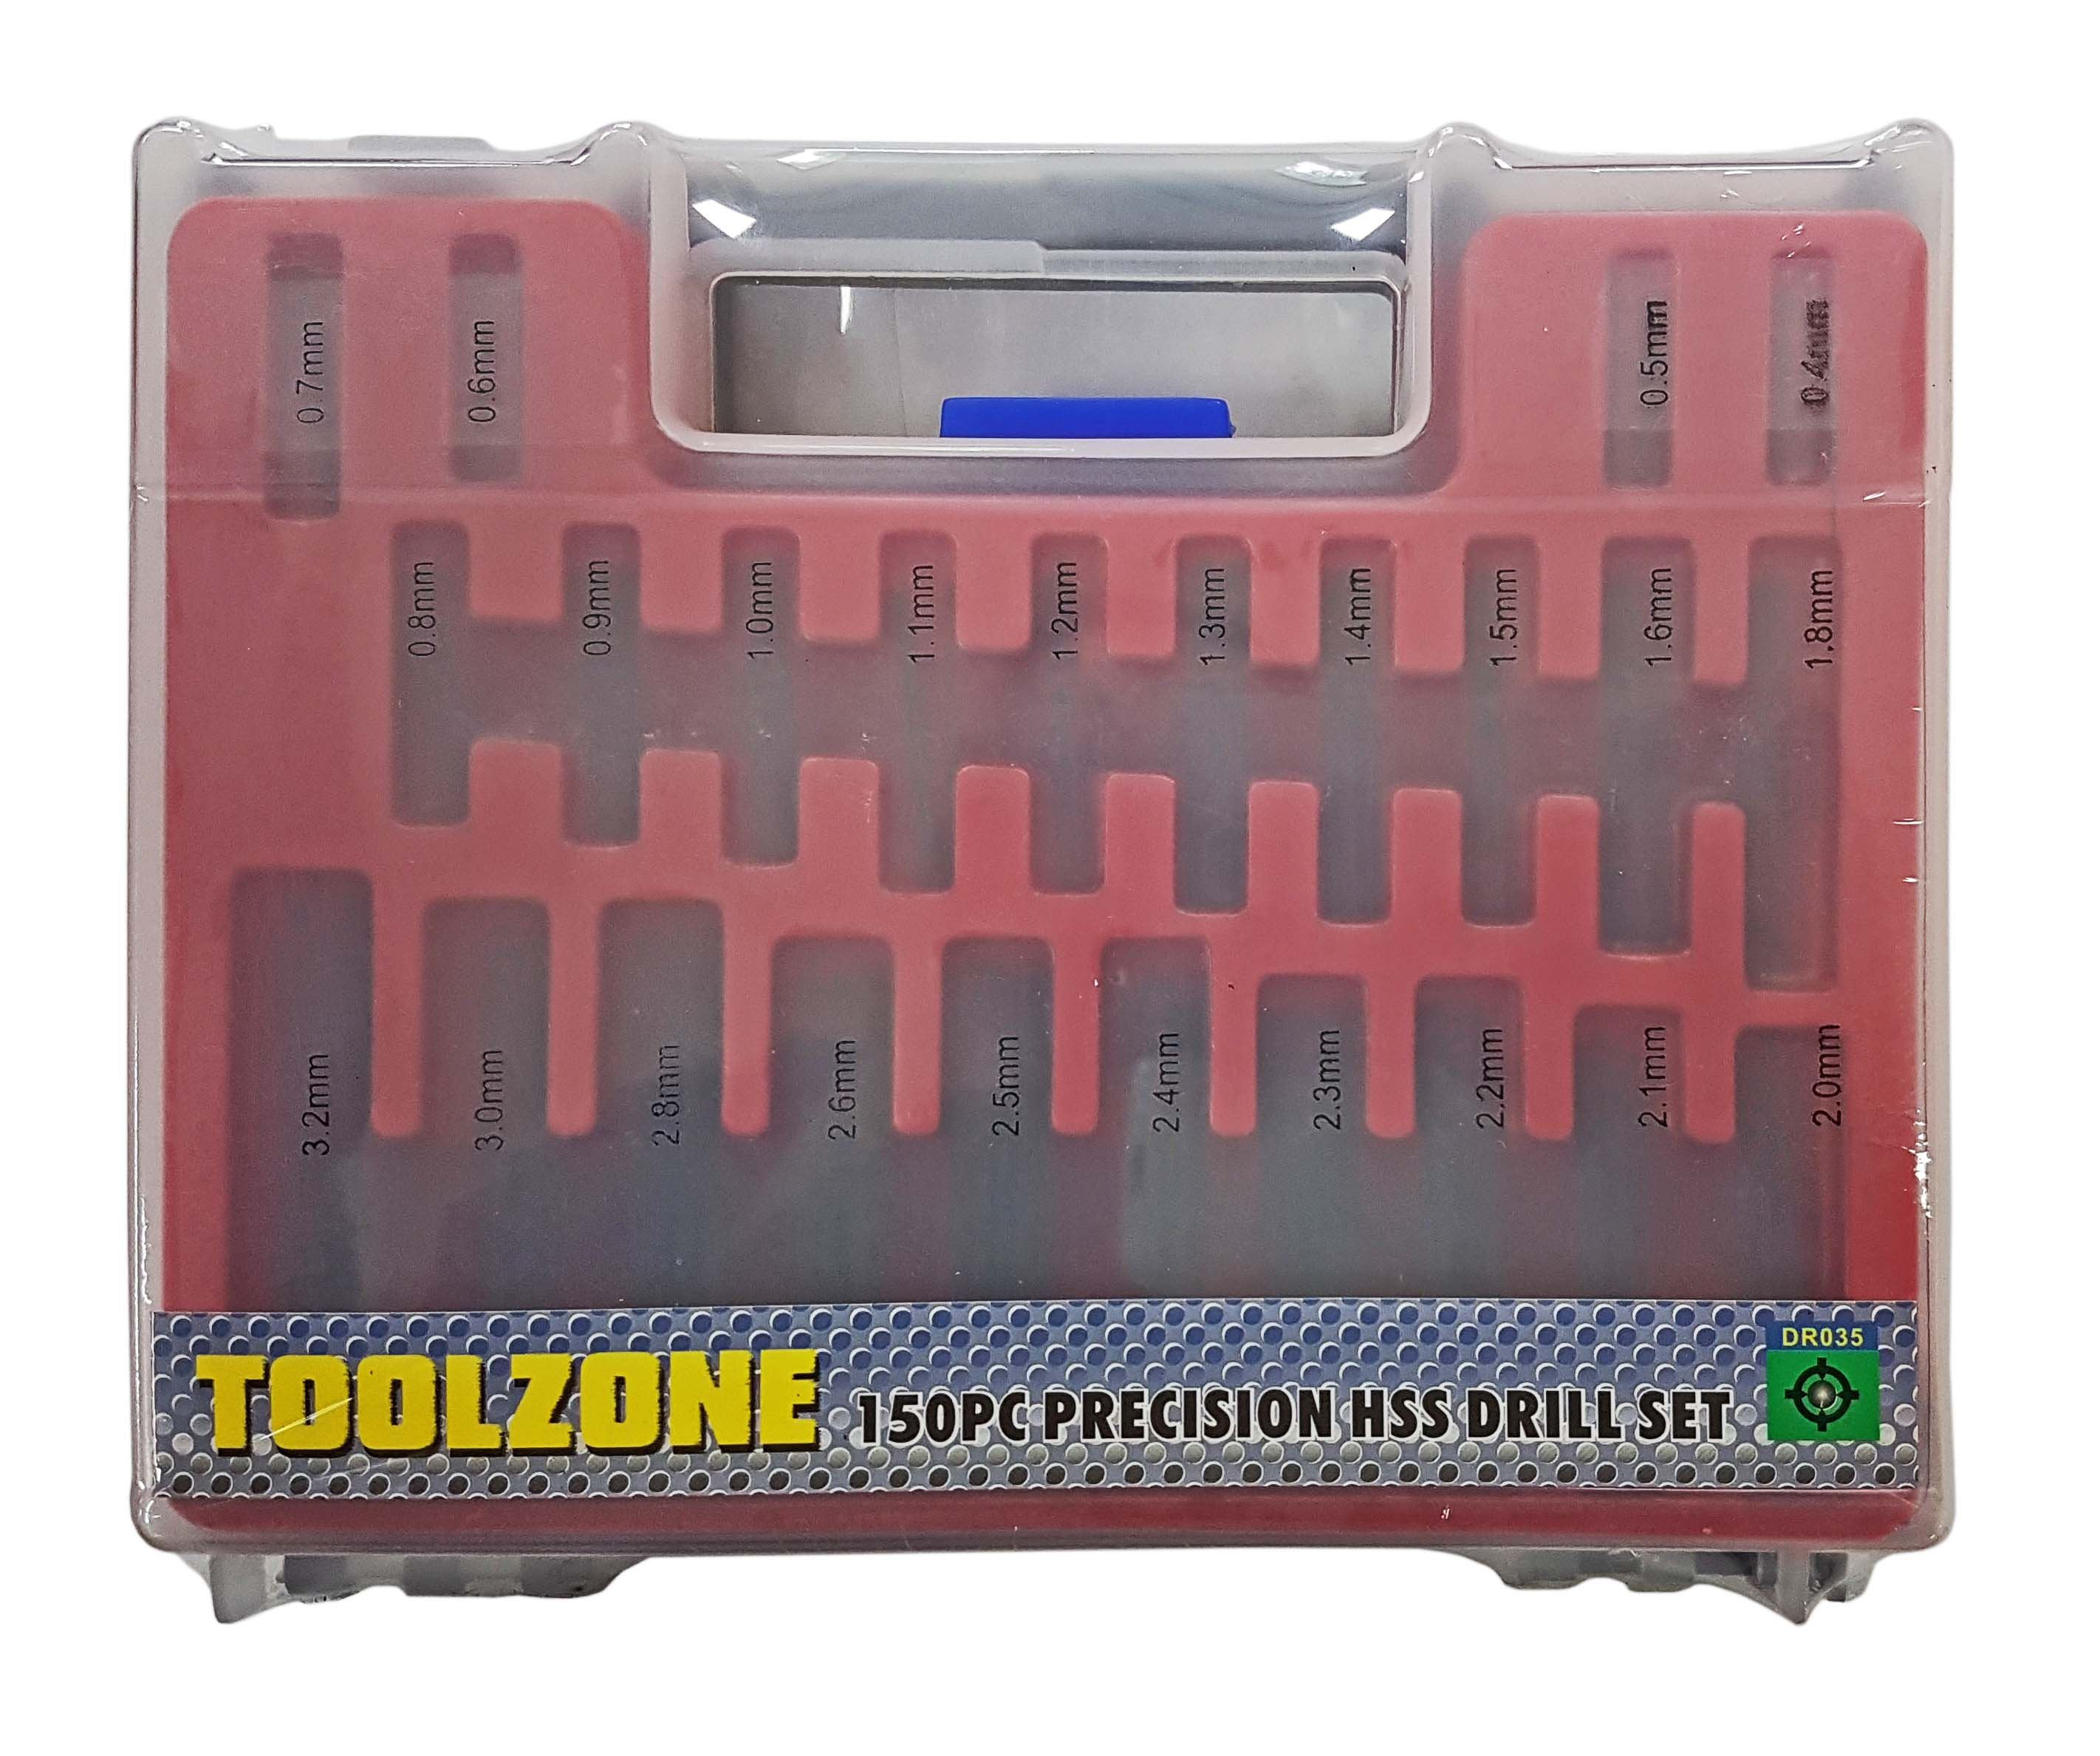 Toolzone 150Pc Precision Hss 4241 Drills